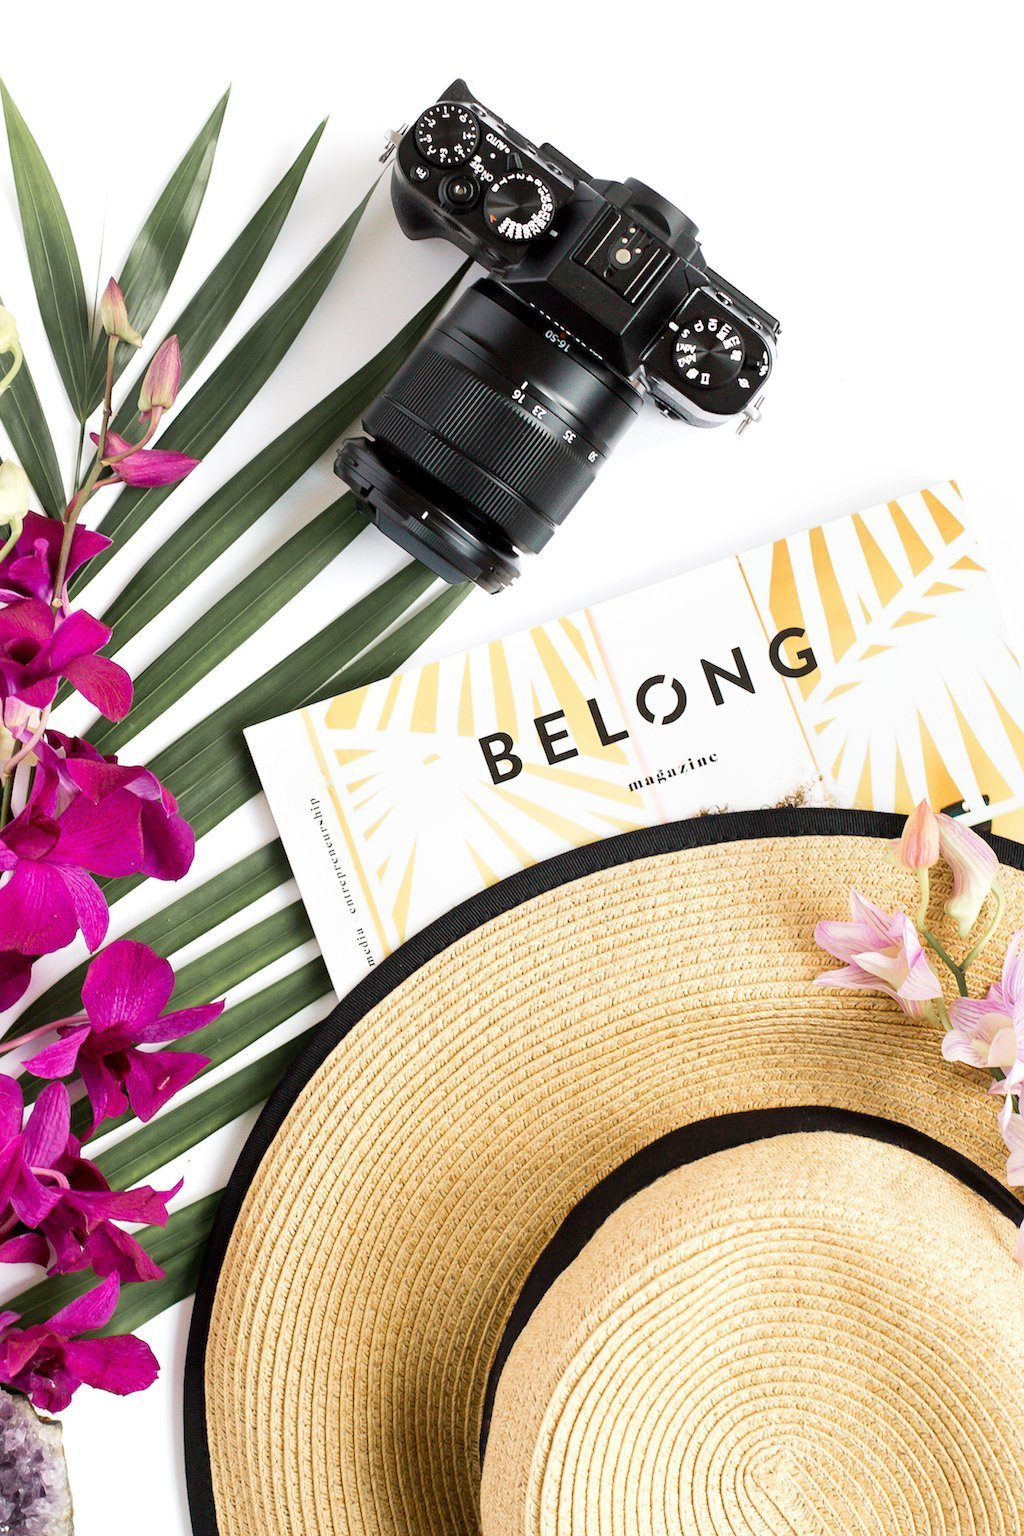 Green palm branches, tropical flowers, hat, magazine and camera.